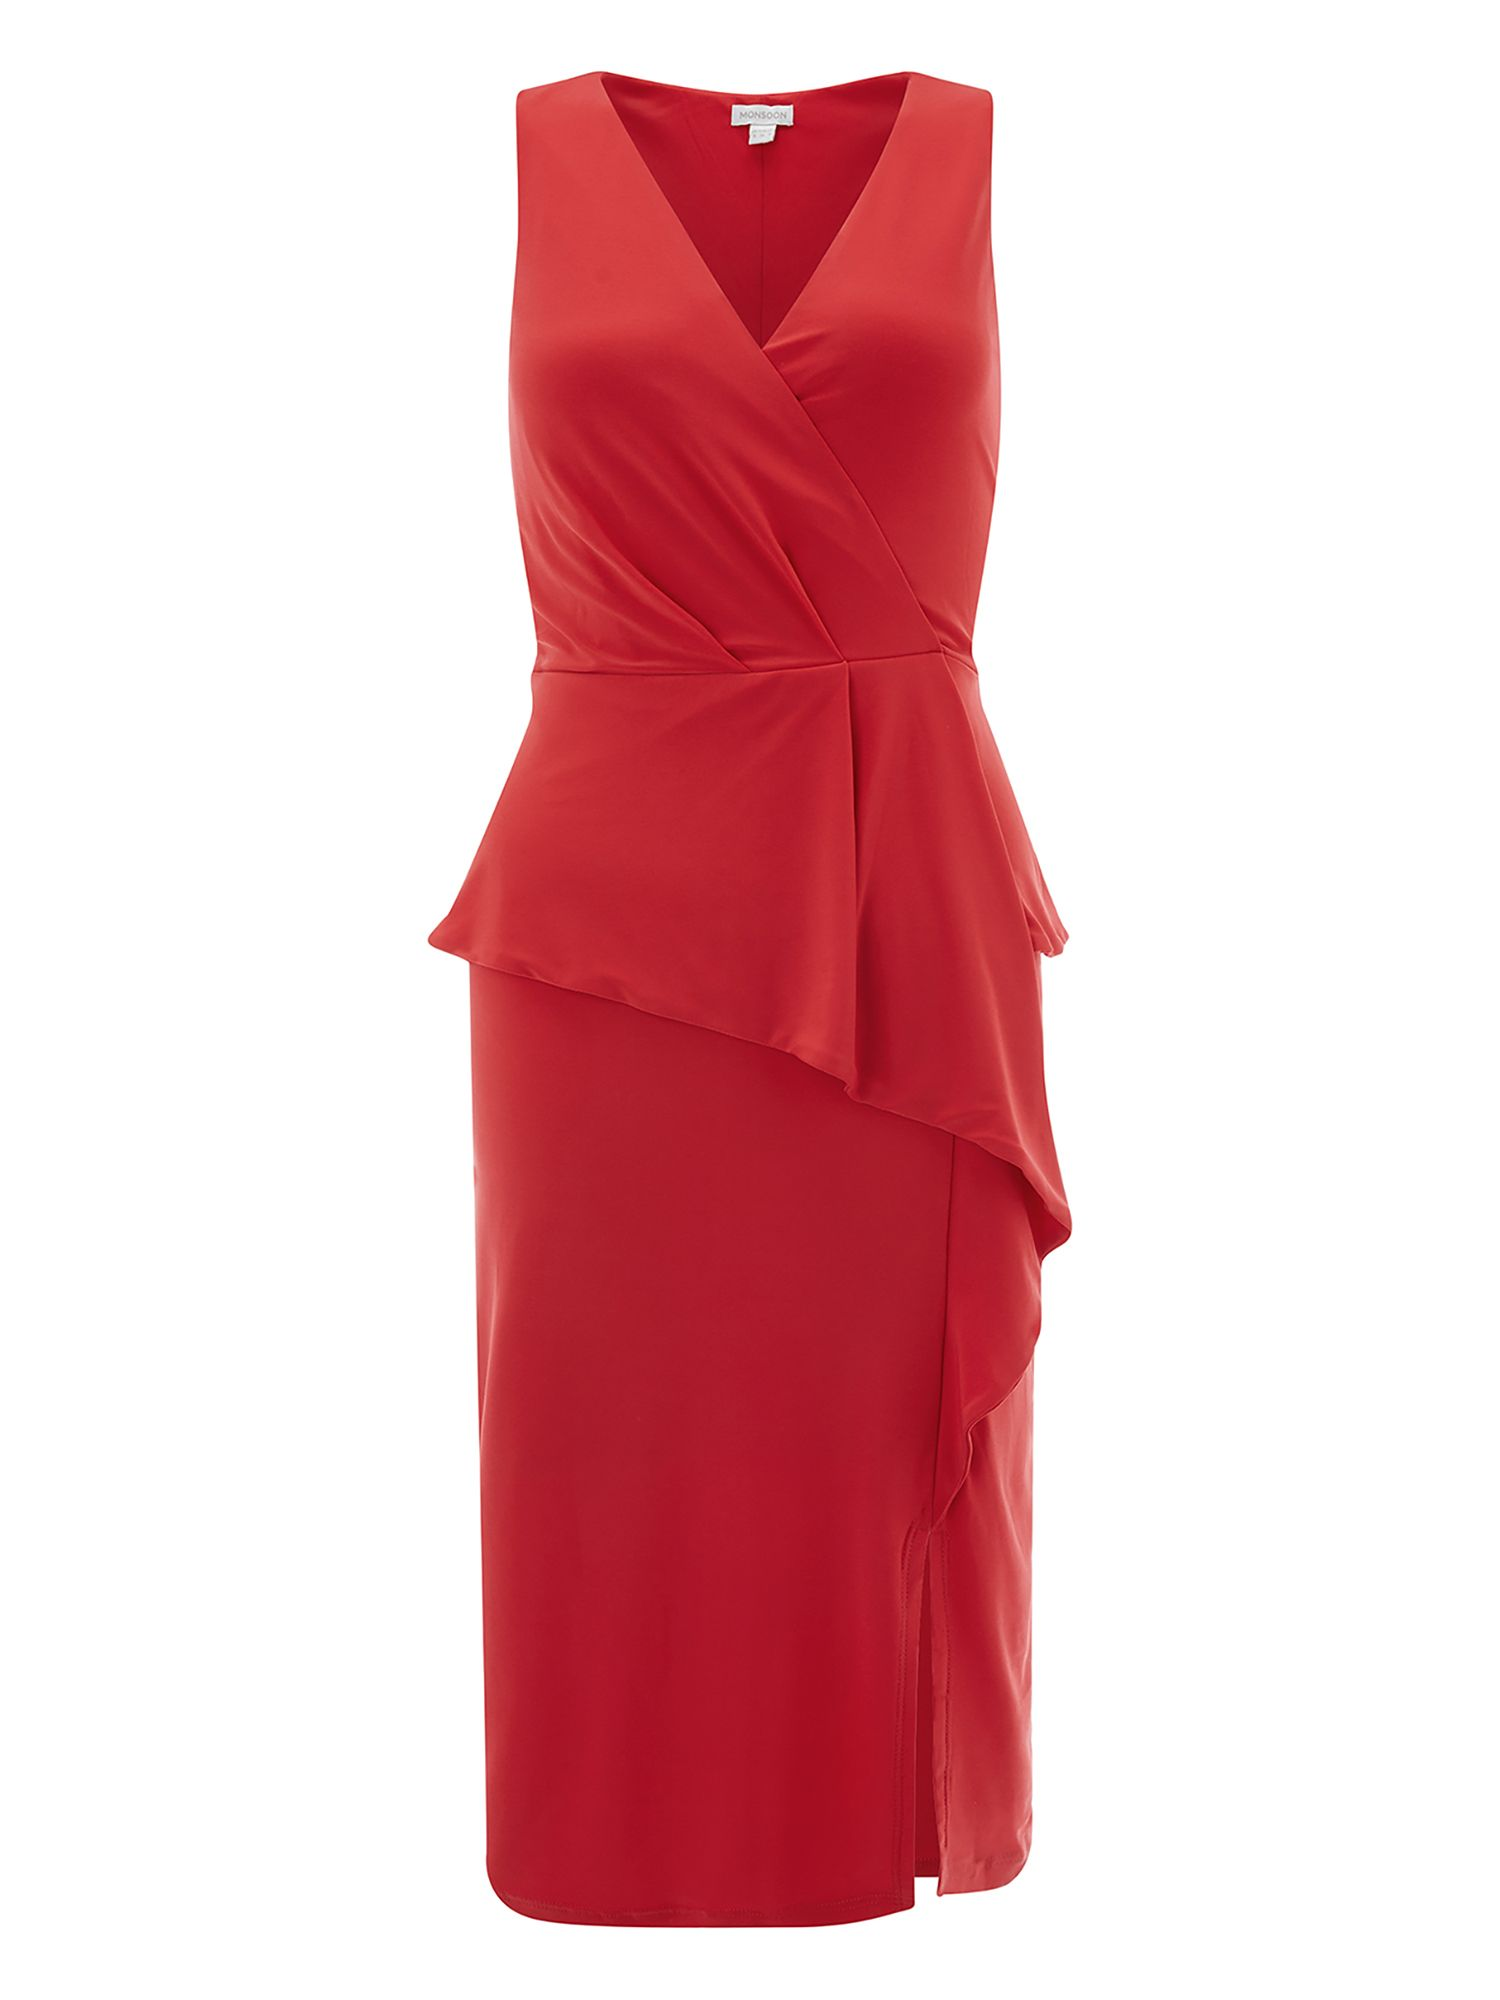 Monsoon Sheila Frill Jersey Dress, Red